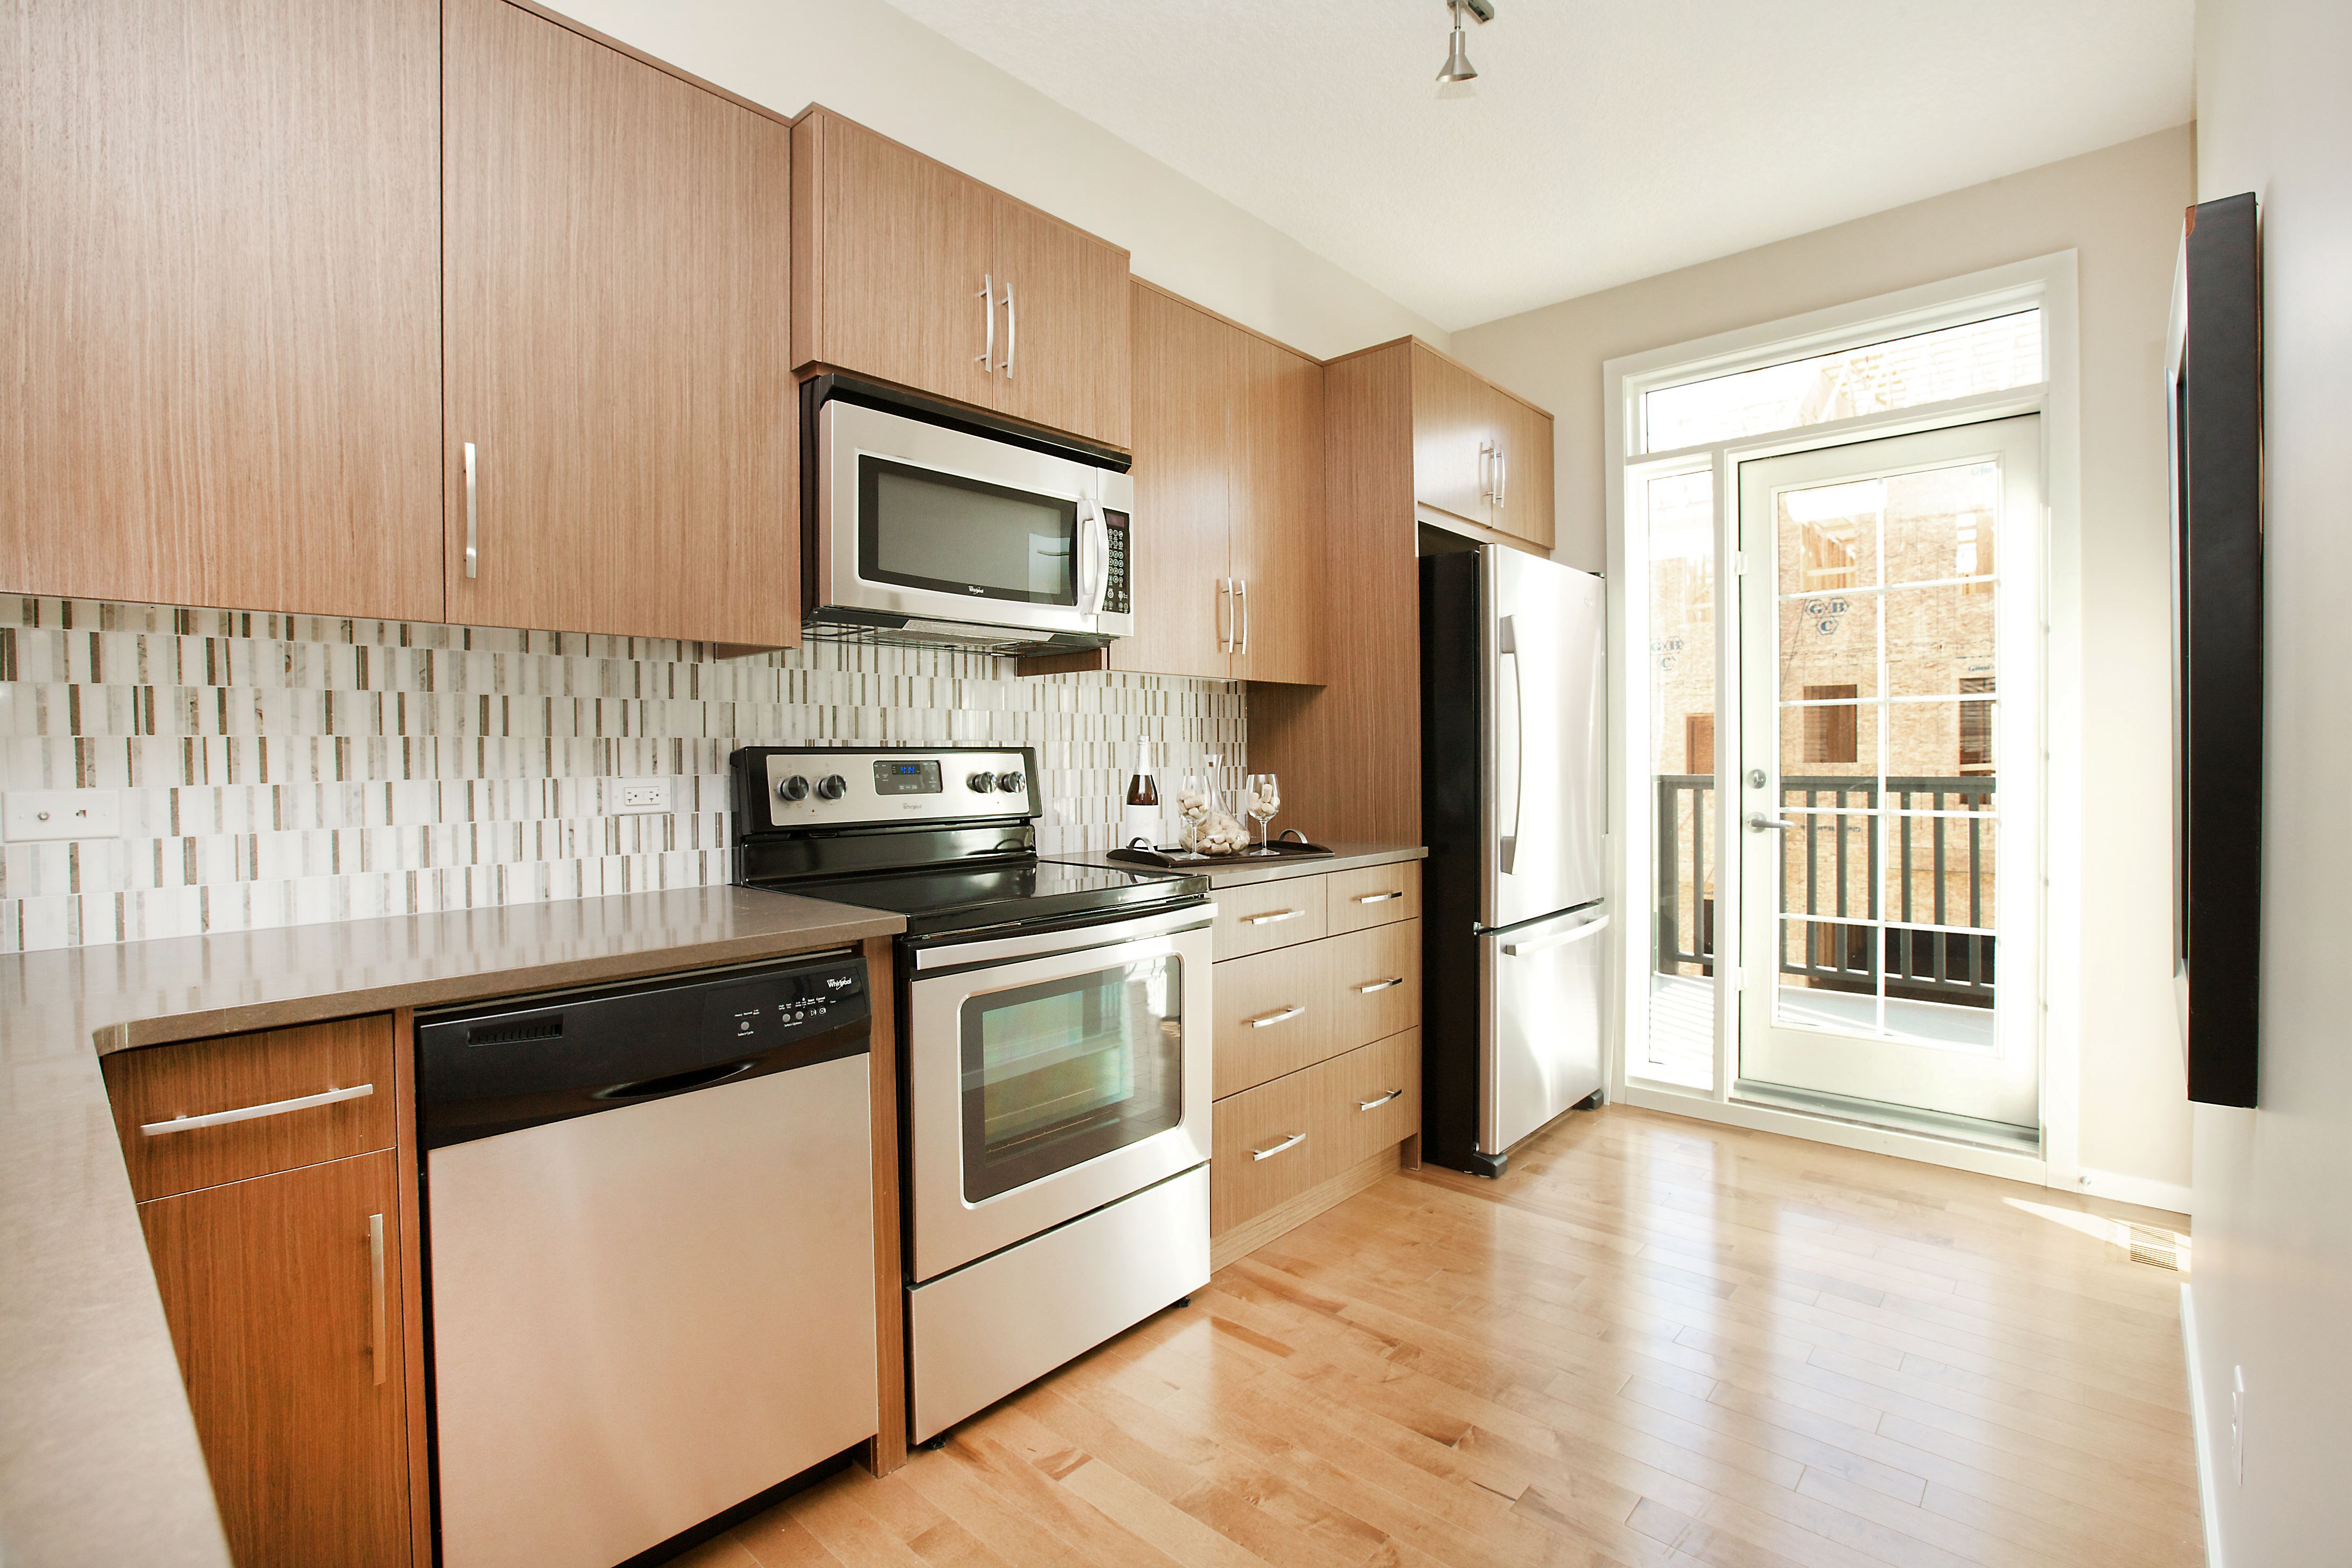 Modern kitchen with flat panel brushed chrome